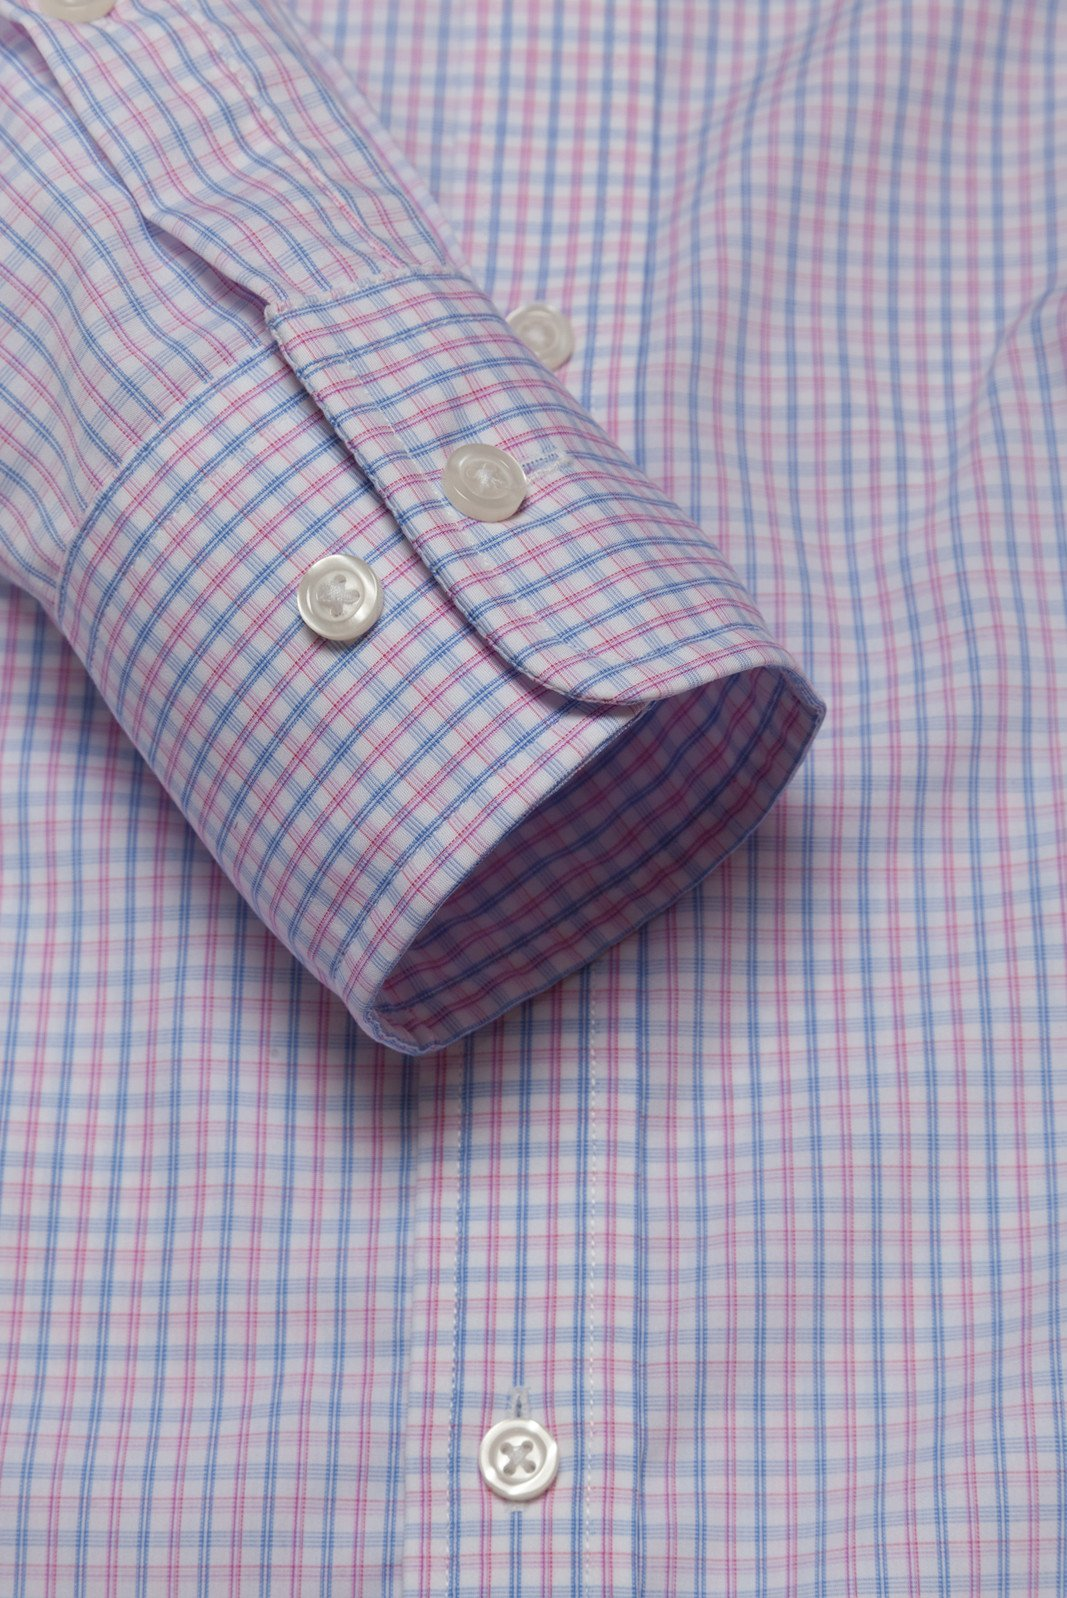 Wrinkle-Resistant Light Blue and Pink Bordered Tattersall: Button-Down Collar, Barrel Cuff